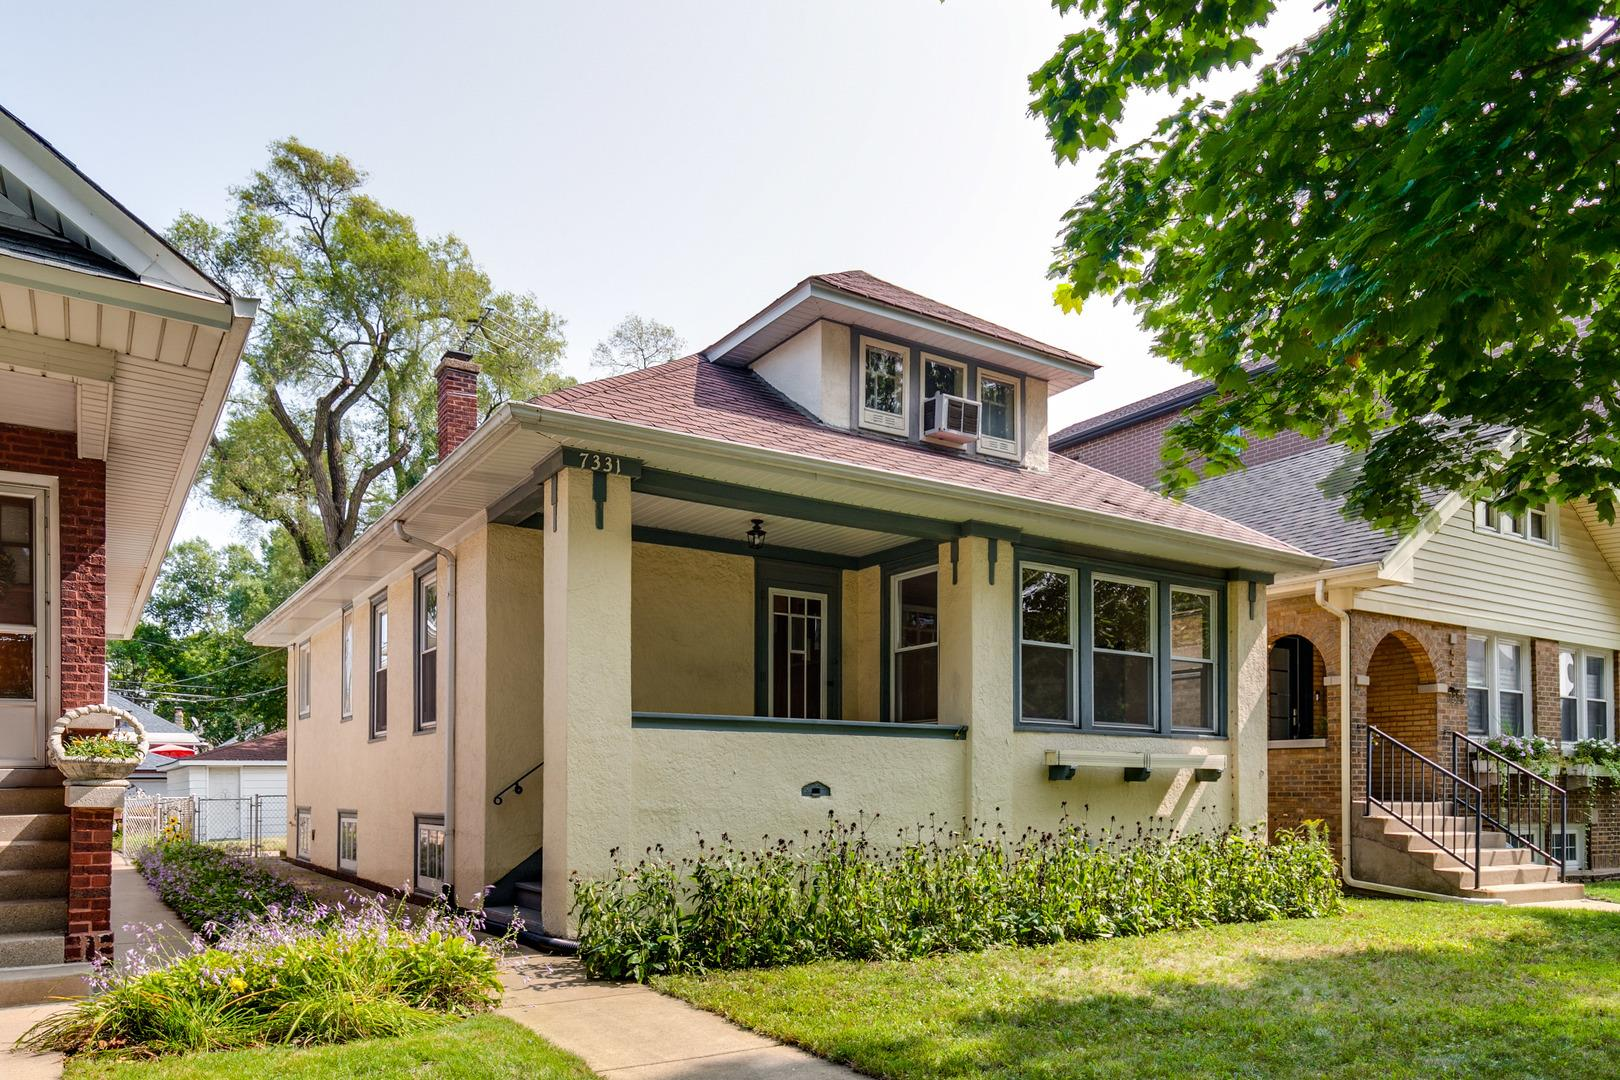 7331 N Oakley Avenue, Chicago, IL 60645 - #: 10863112